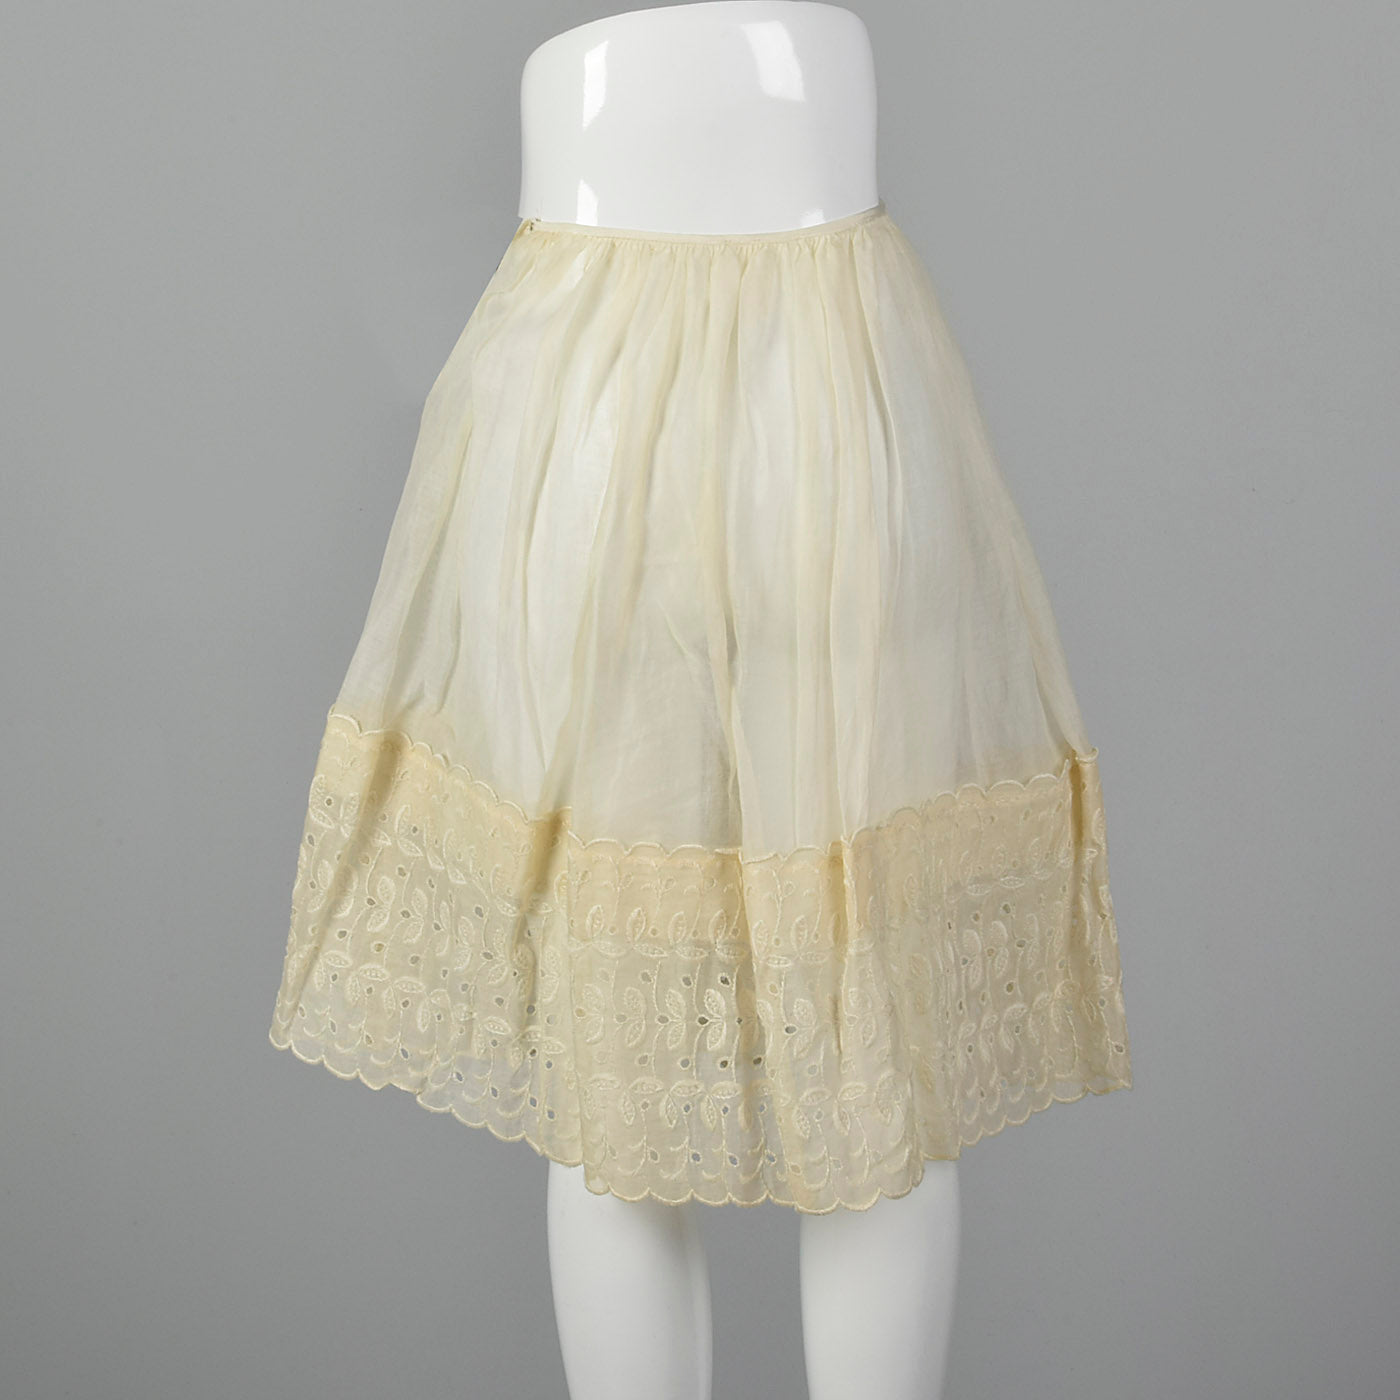 1950s Off White Cotton Eyelet Slip